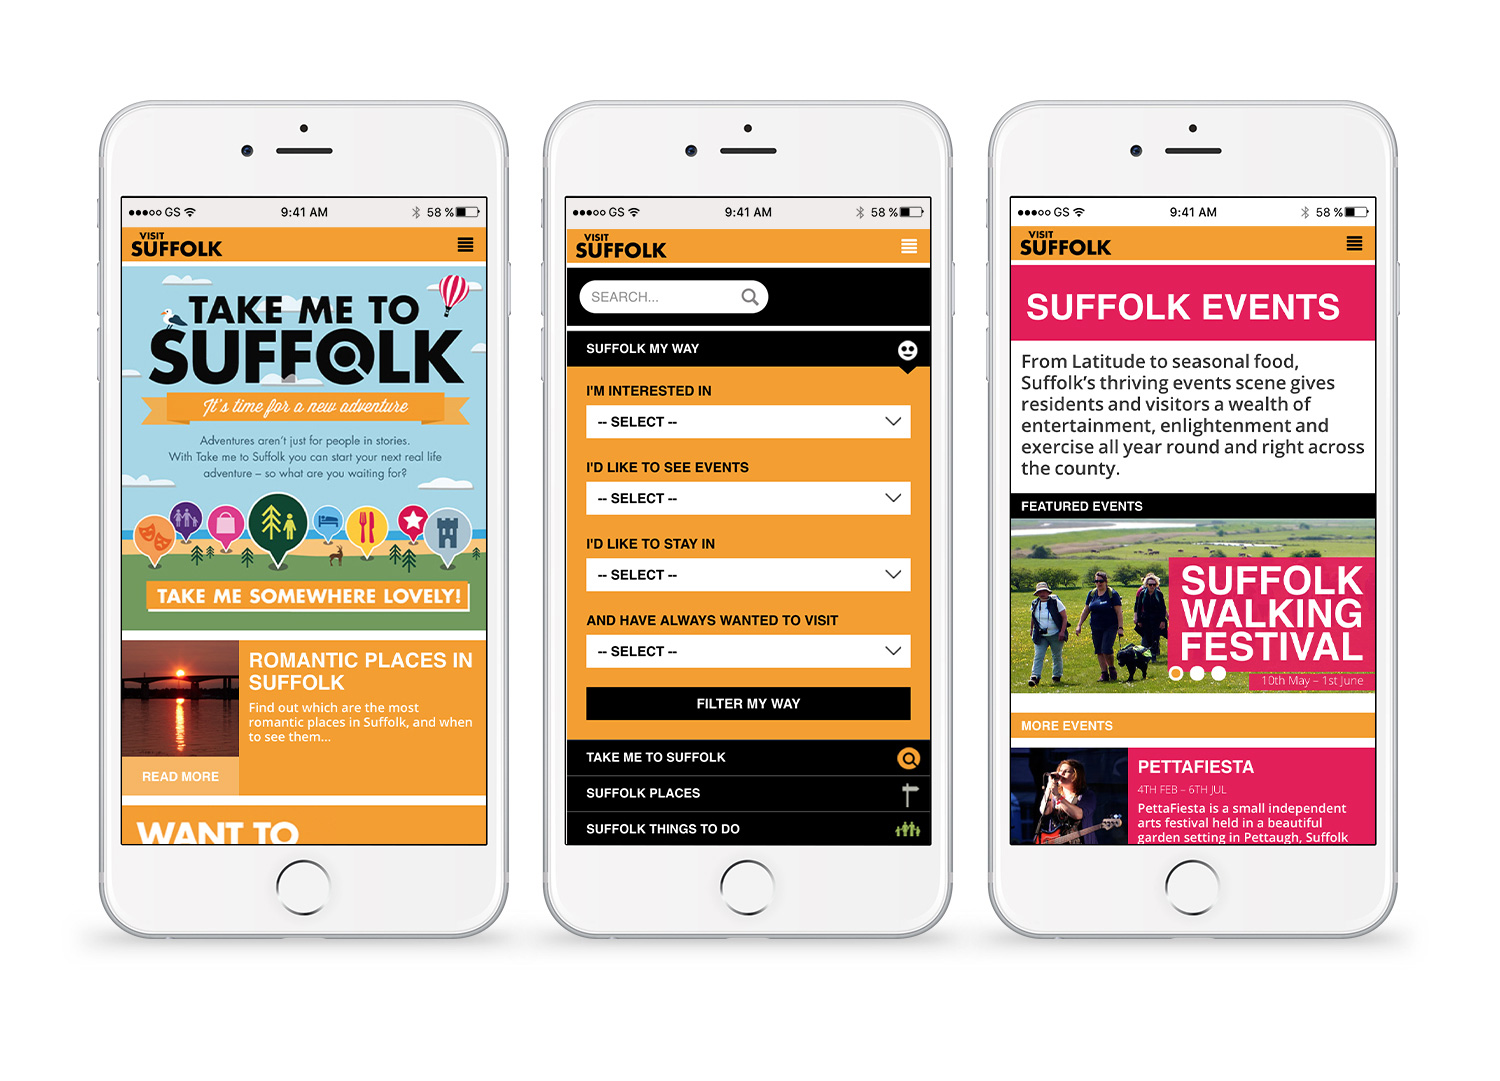 Take me to Suffolk mobile pages